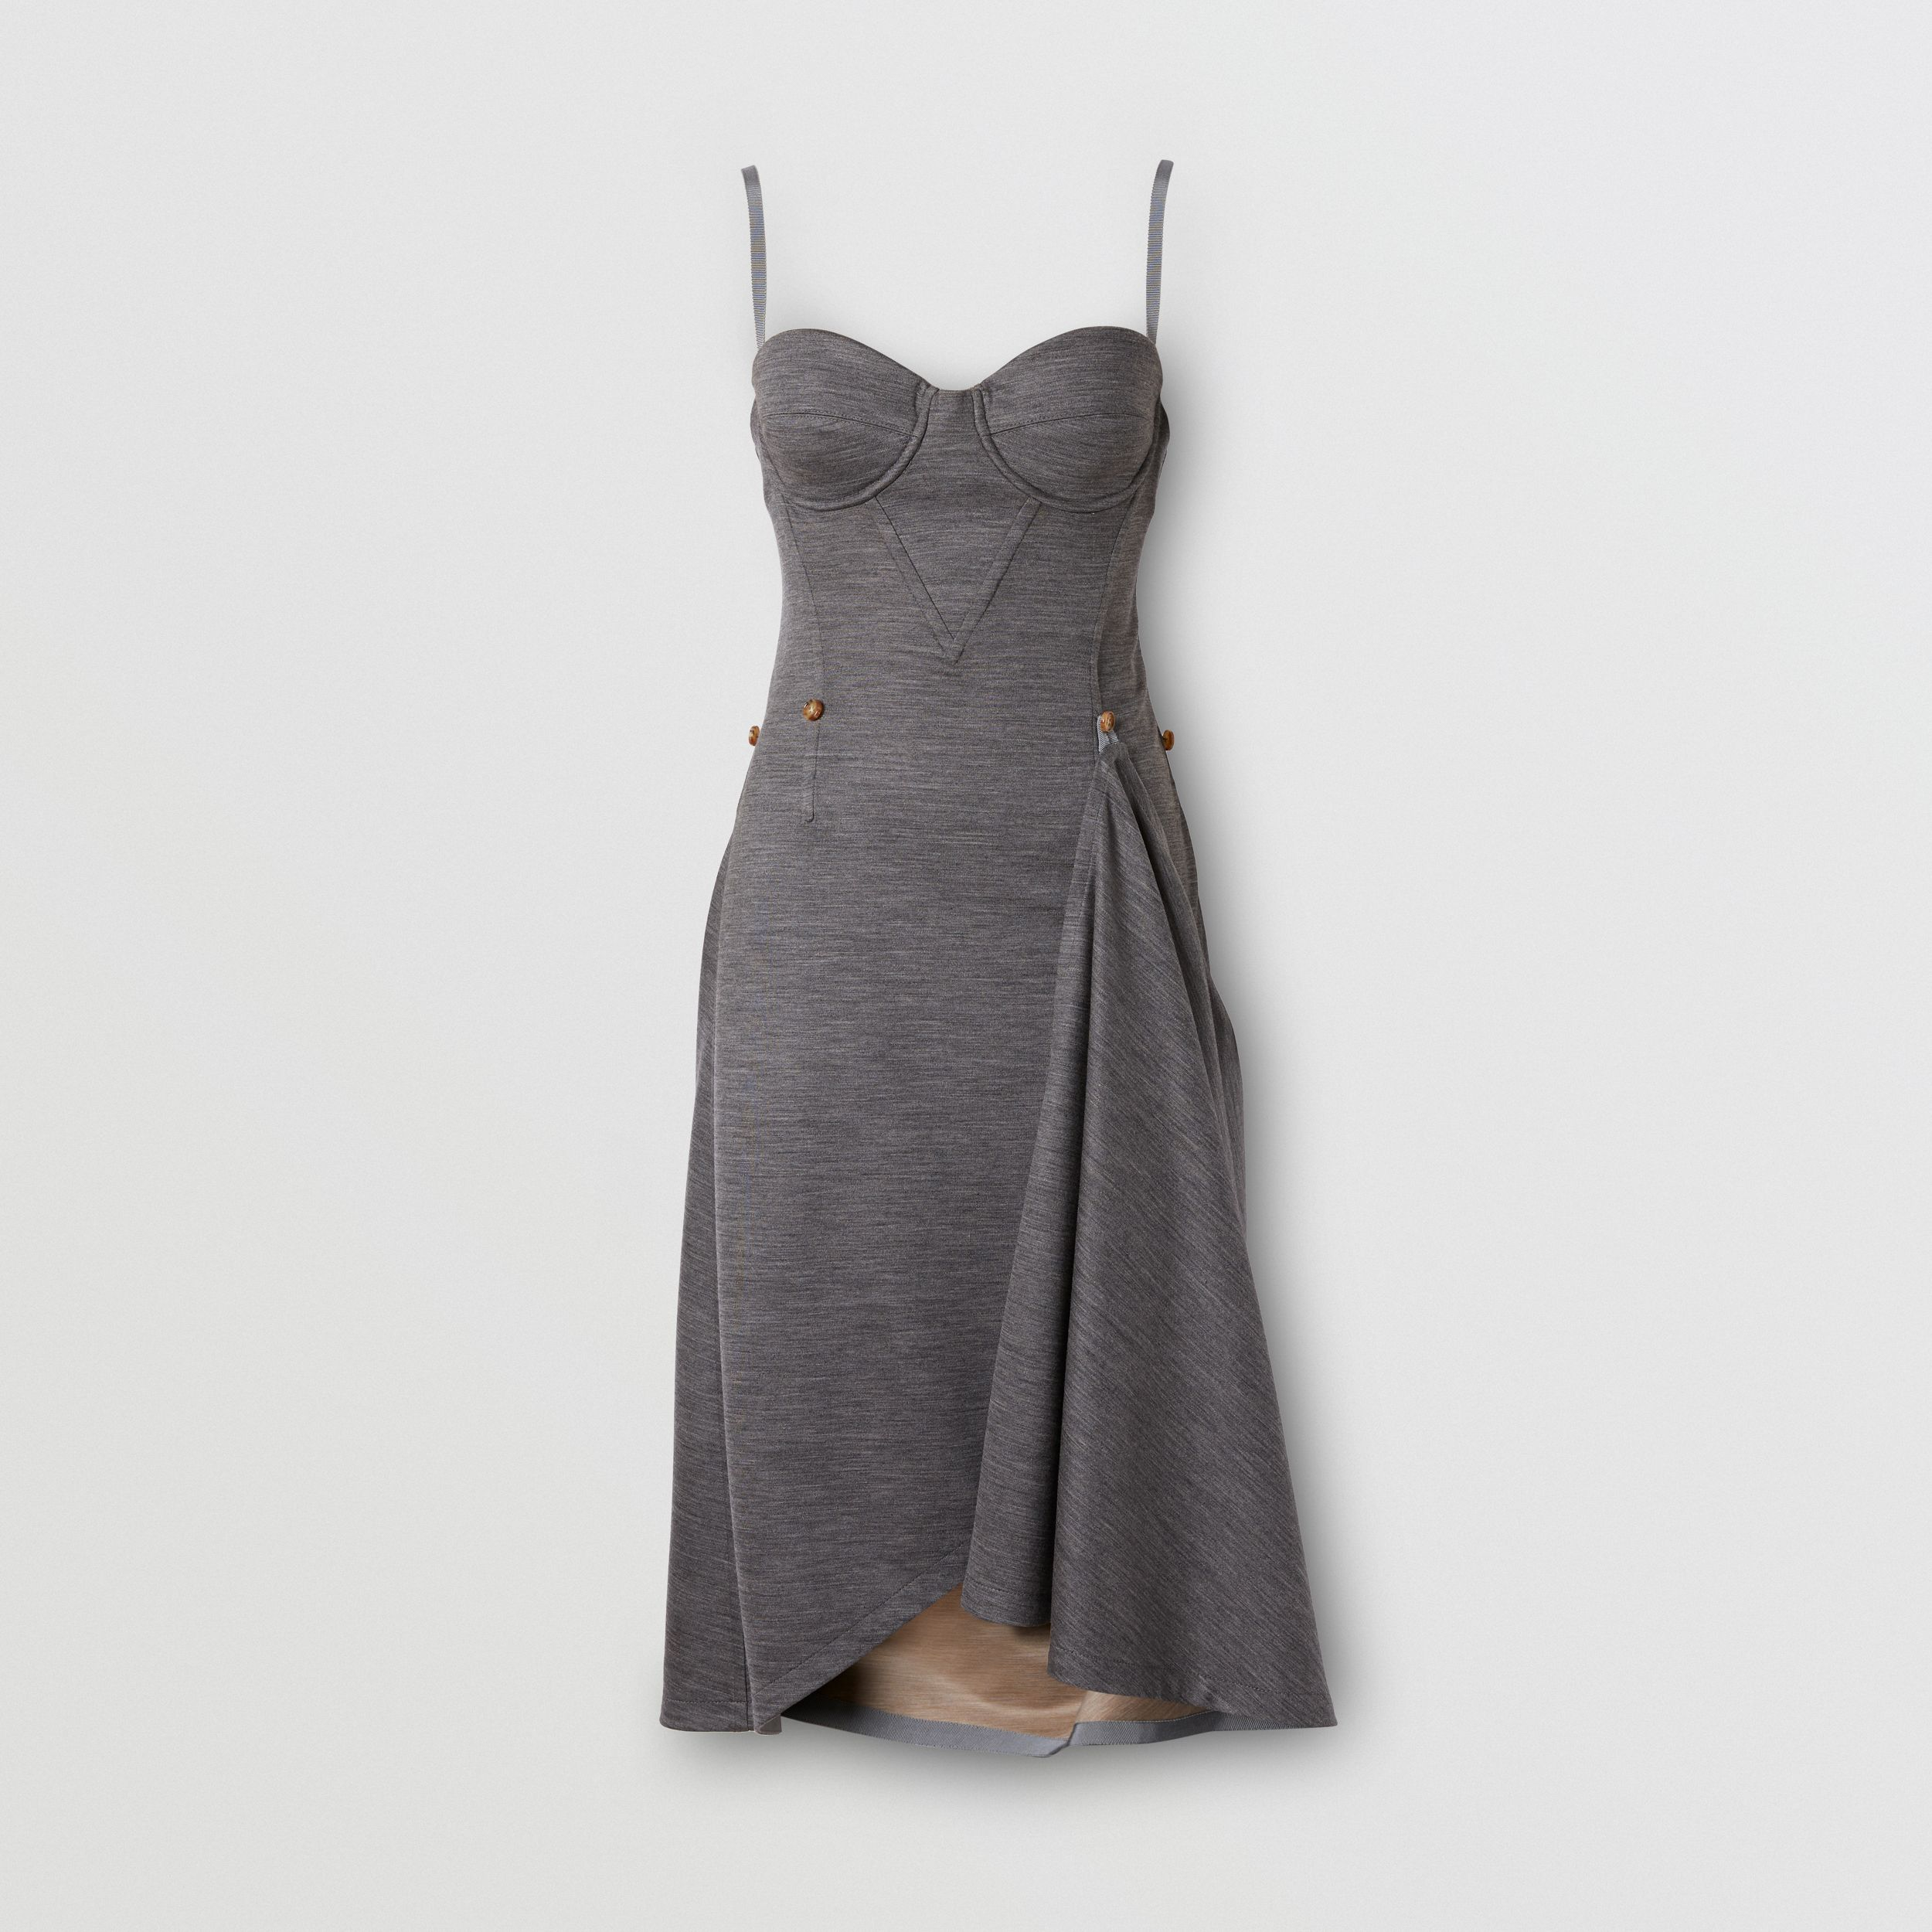 Asymmetric Technical Wool Corset Dress in Charcoal Grey - Women | Burberry Australia - 4